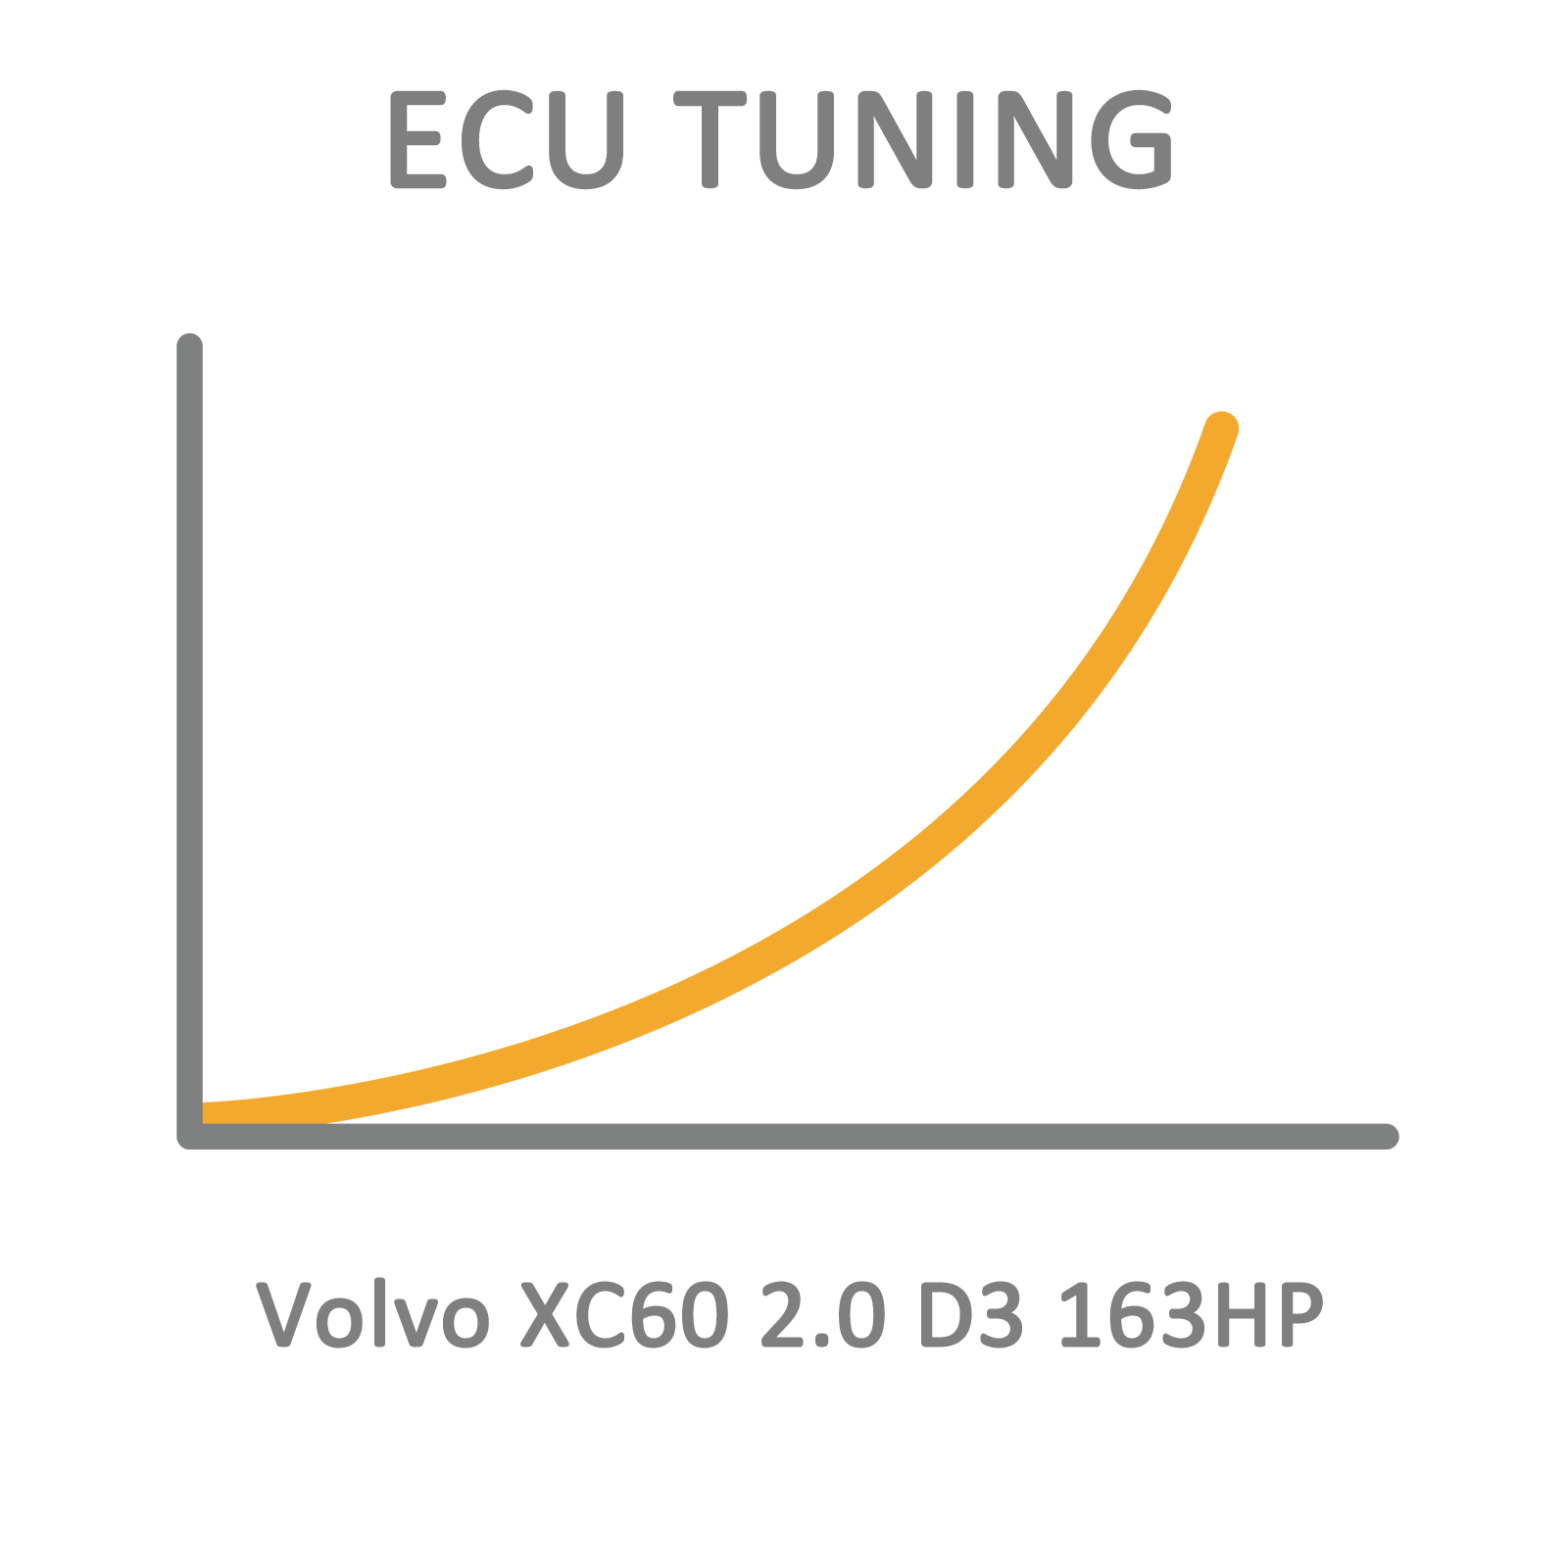 Volvo XC60 2.0 D3 163HP ECU Tuning Remapping Programming